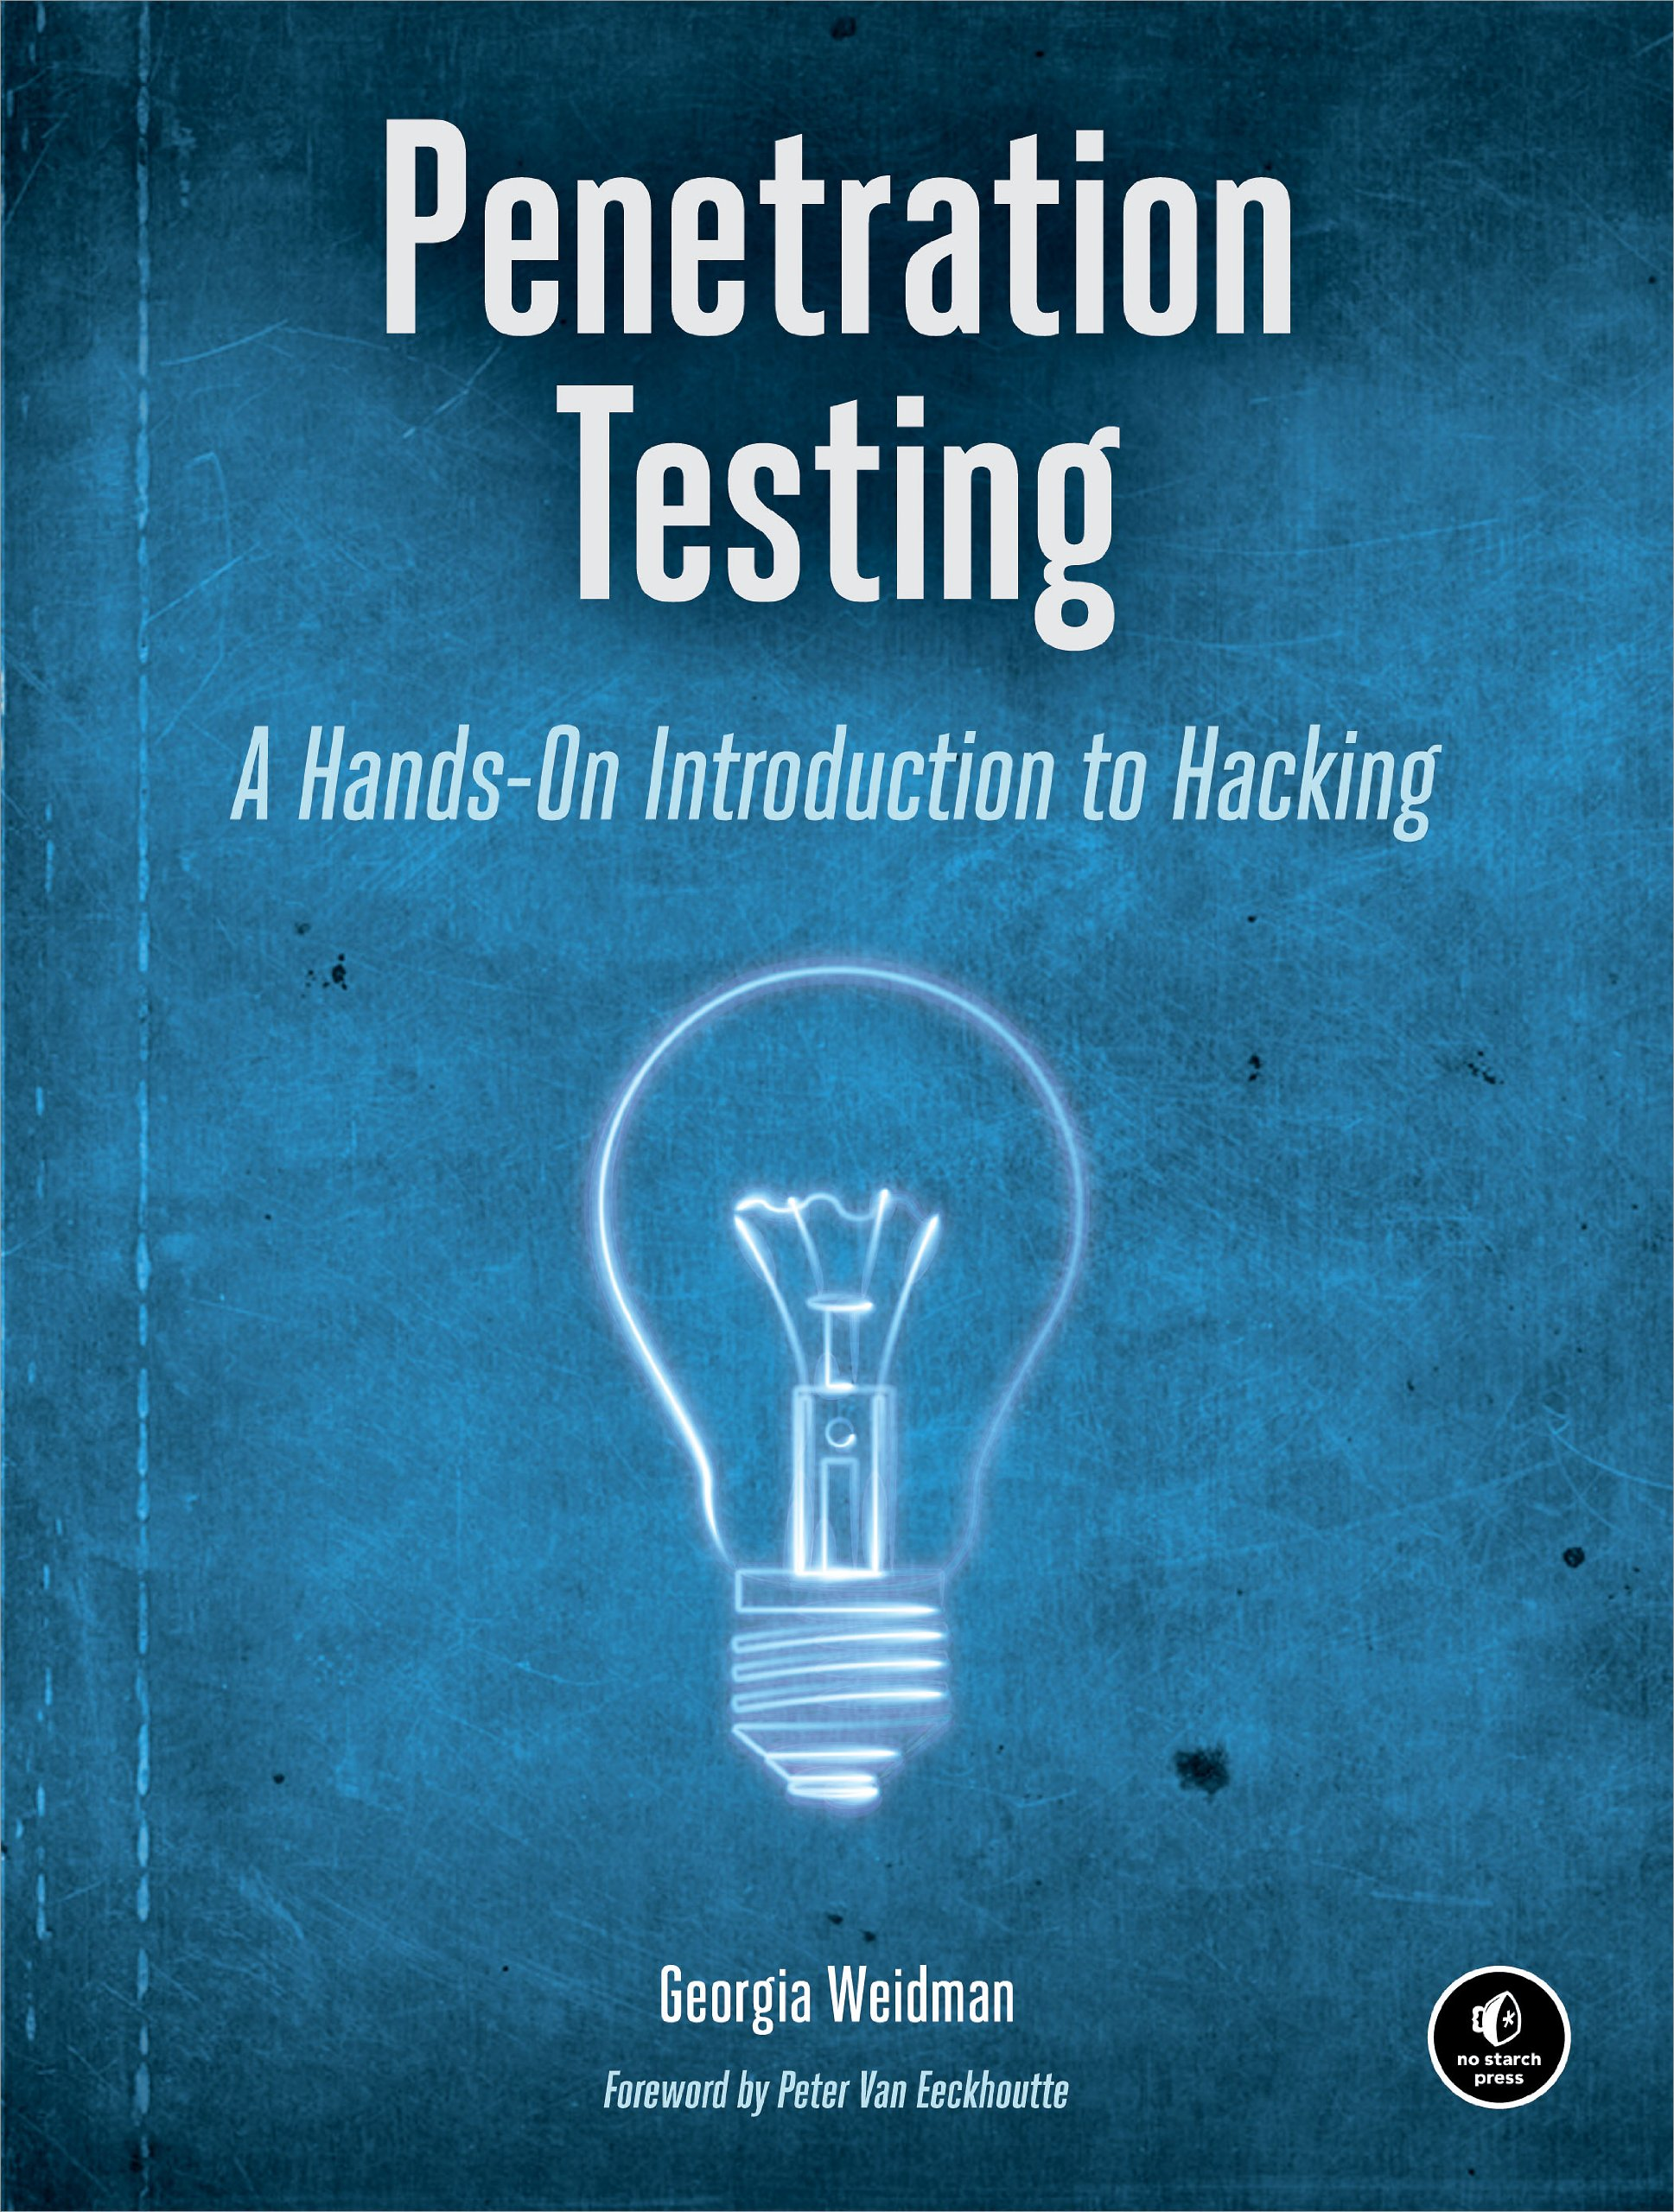 Penetration testing A Hands-on introduction to hacking by Georgia Weidman Review!